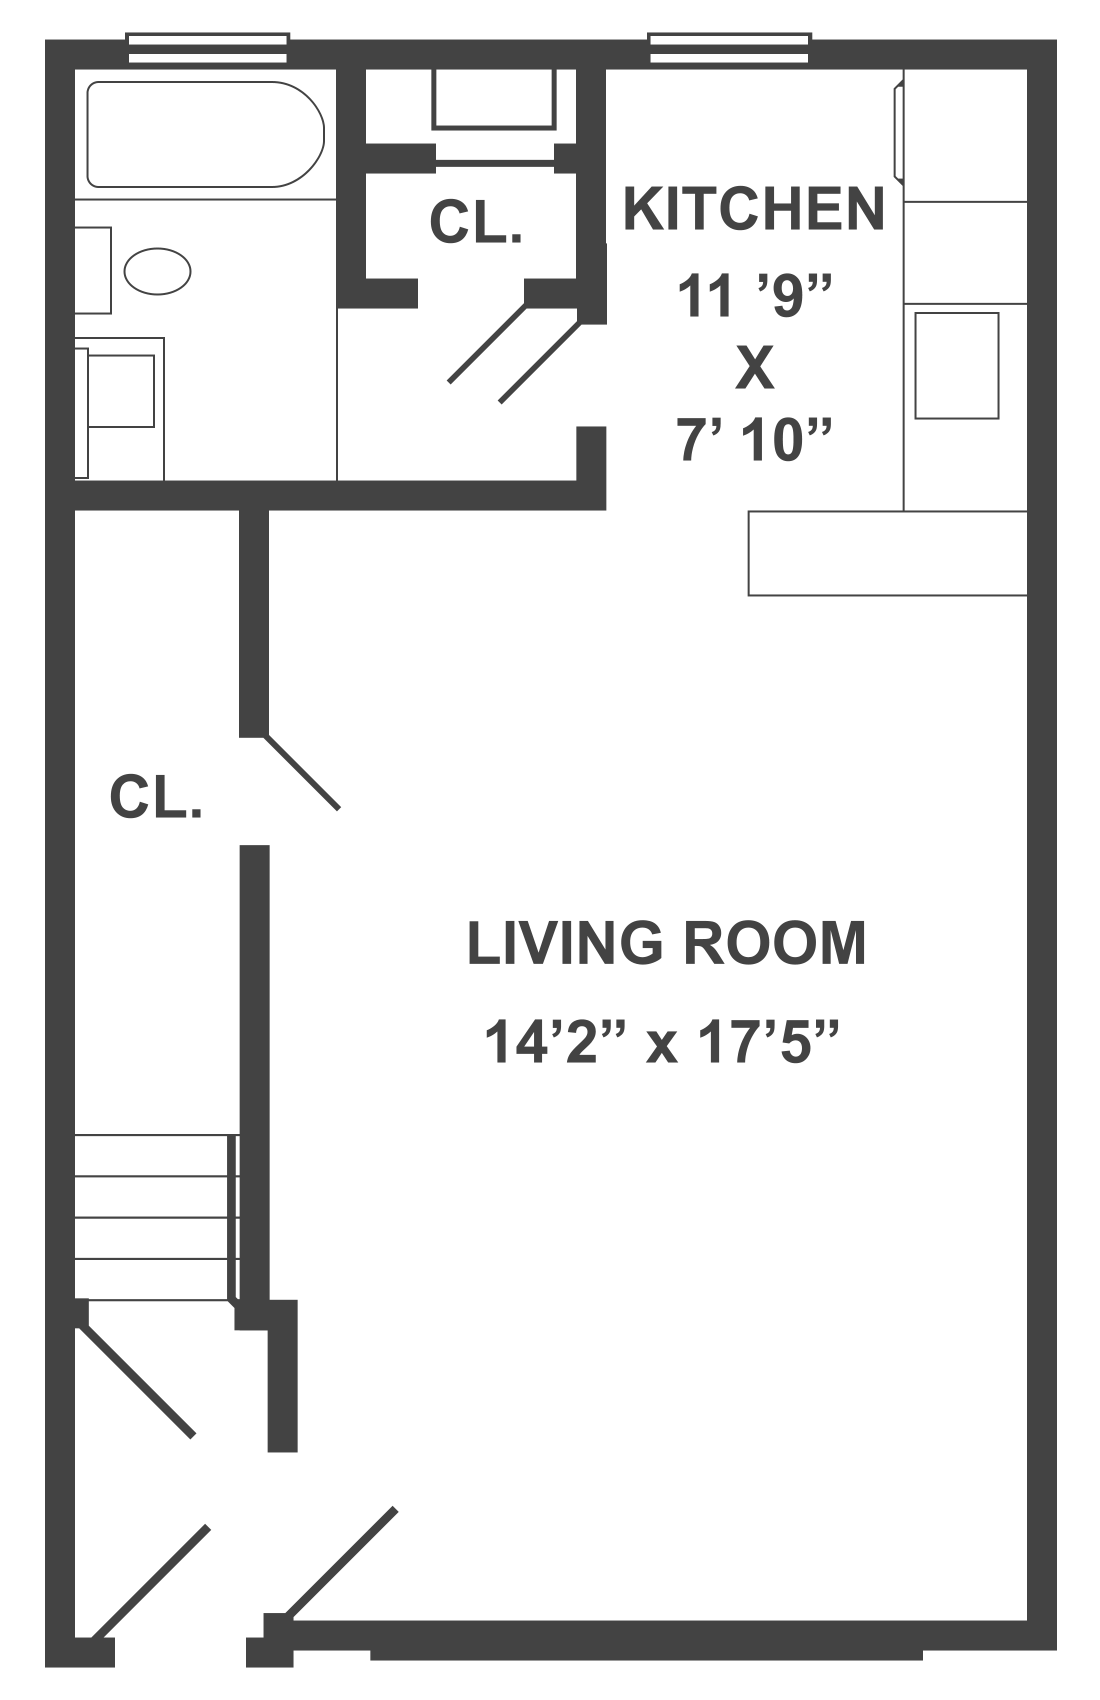 Typical Studio Apartment Floor Plan